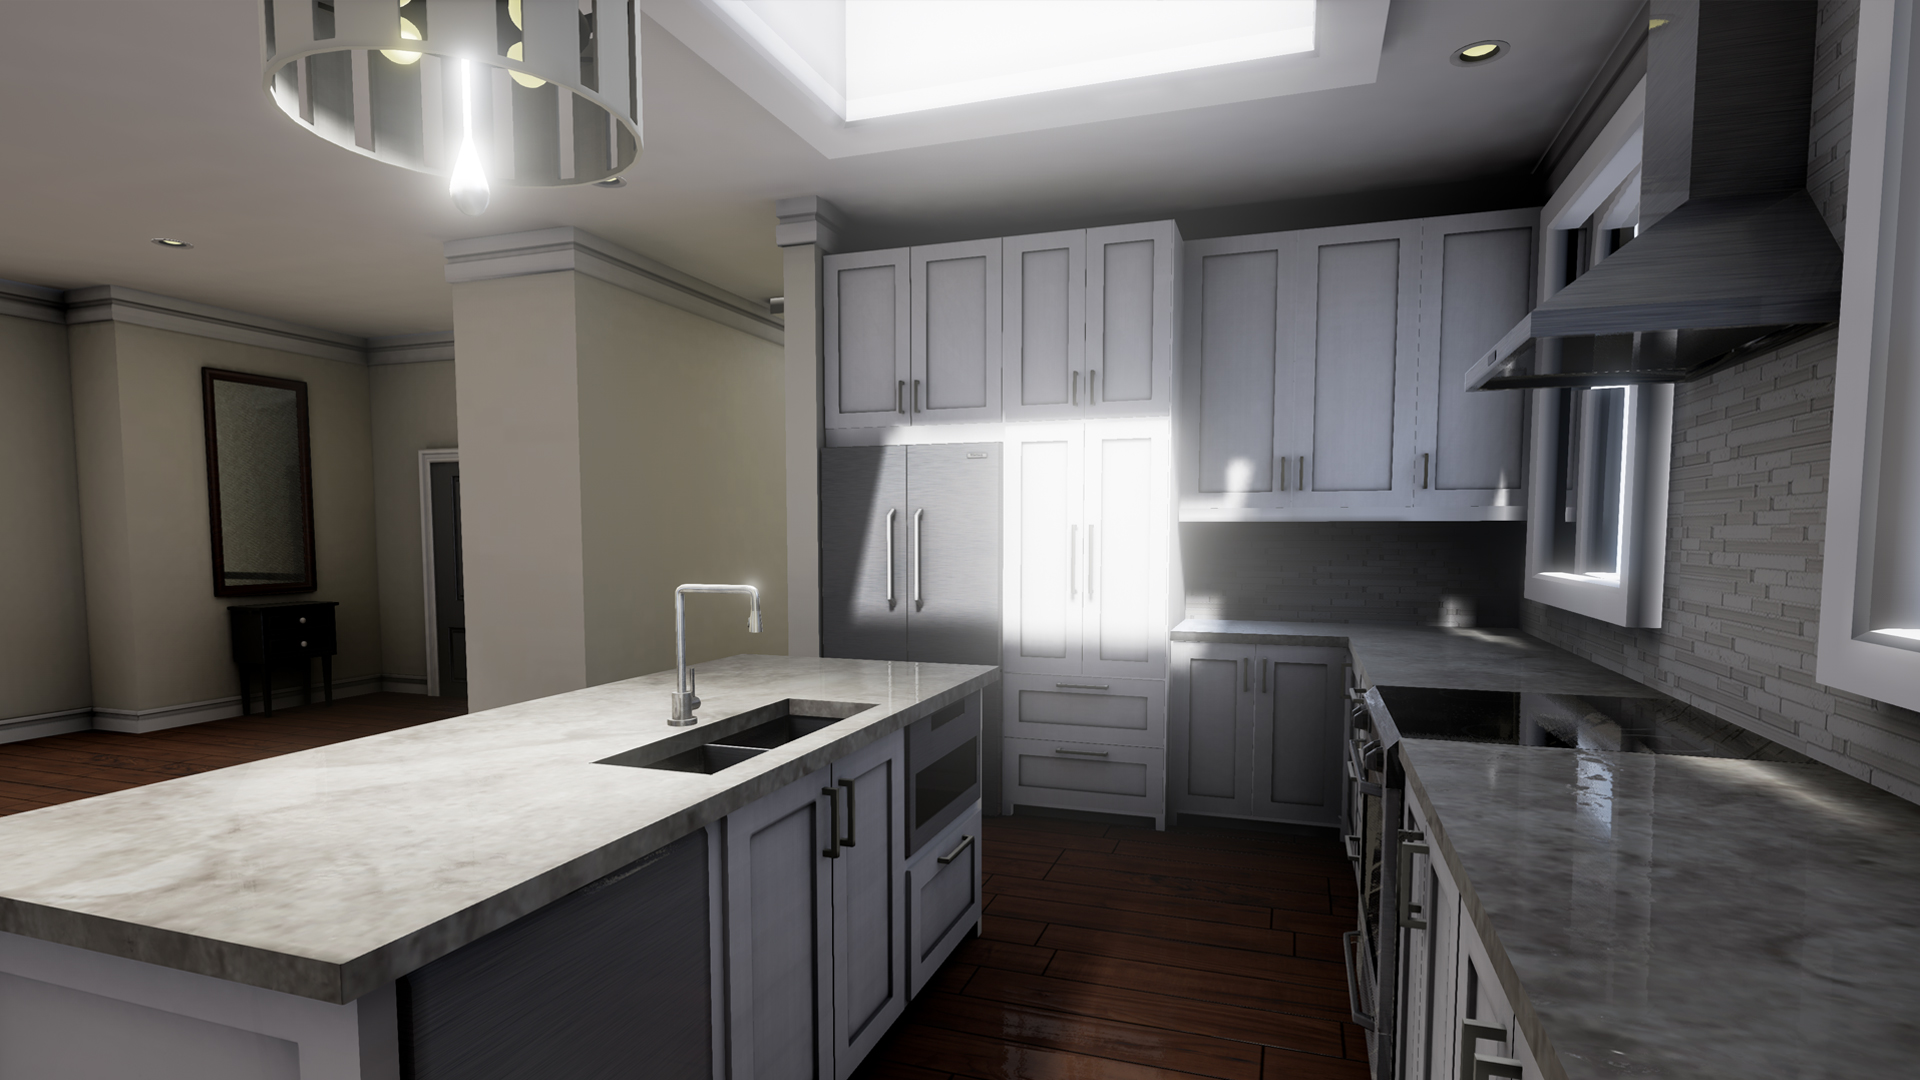 unity 5 interior lighting tutorial